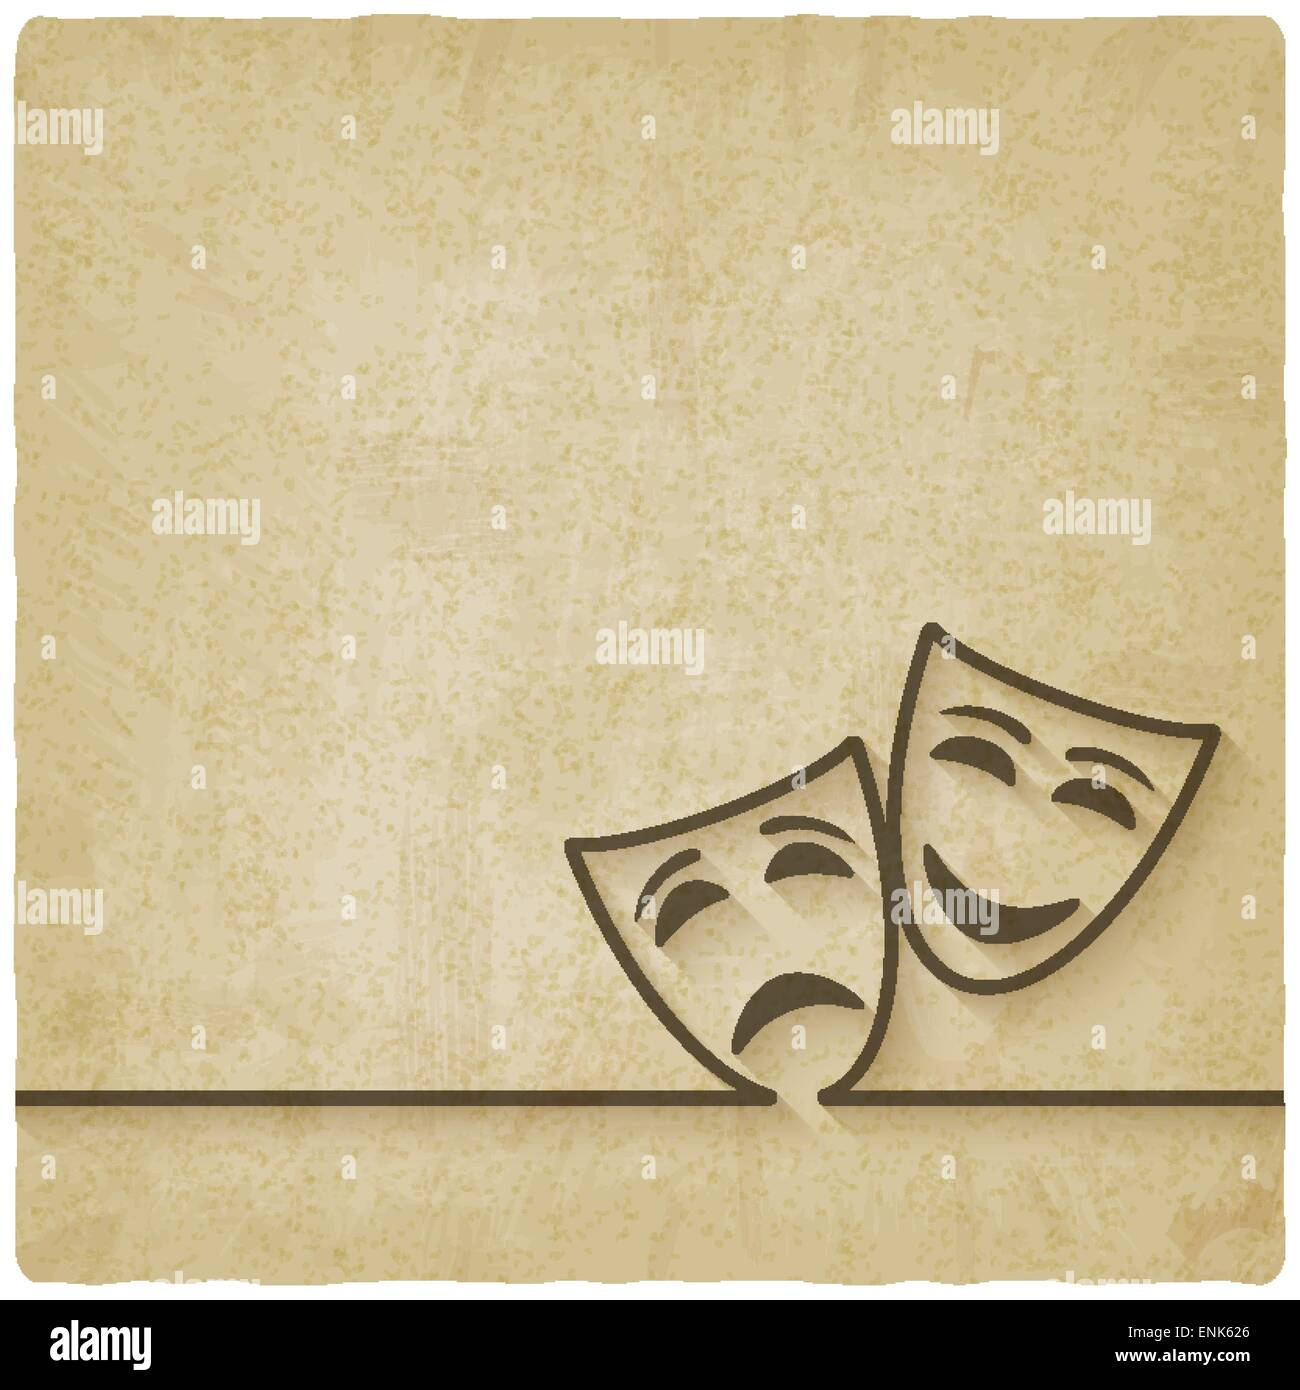 Theatre Masks Comedy Tragedy Stock Photos & Theatre Masks Comedy ...